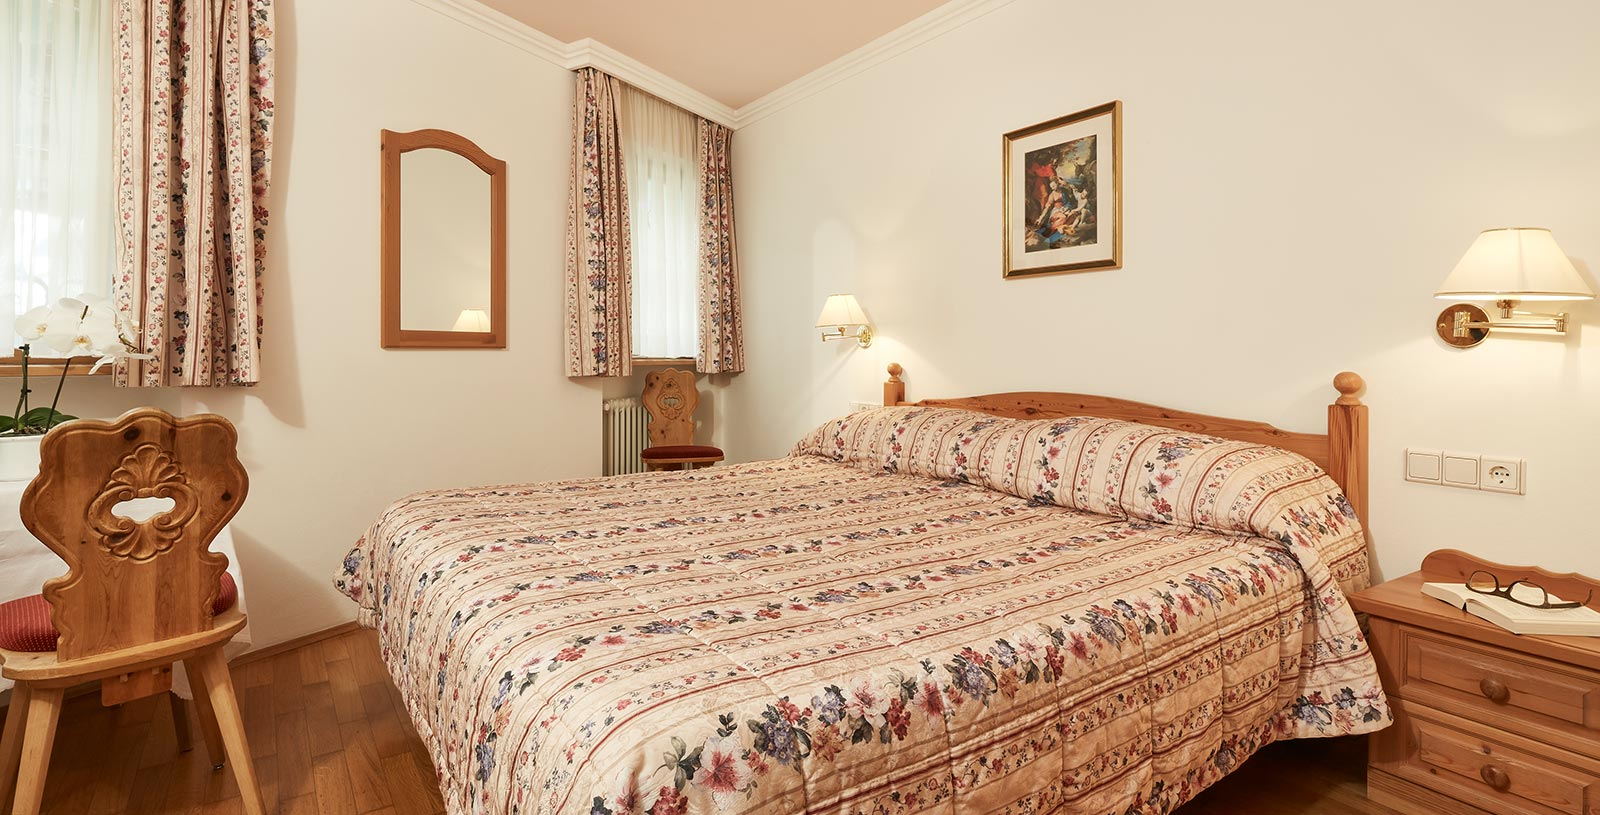 the kingsize bed of a vacation home in Corvara, curtains and bed linen wear the same flower motif